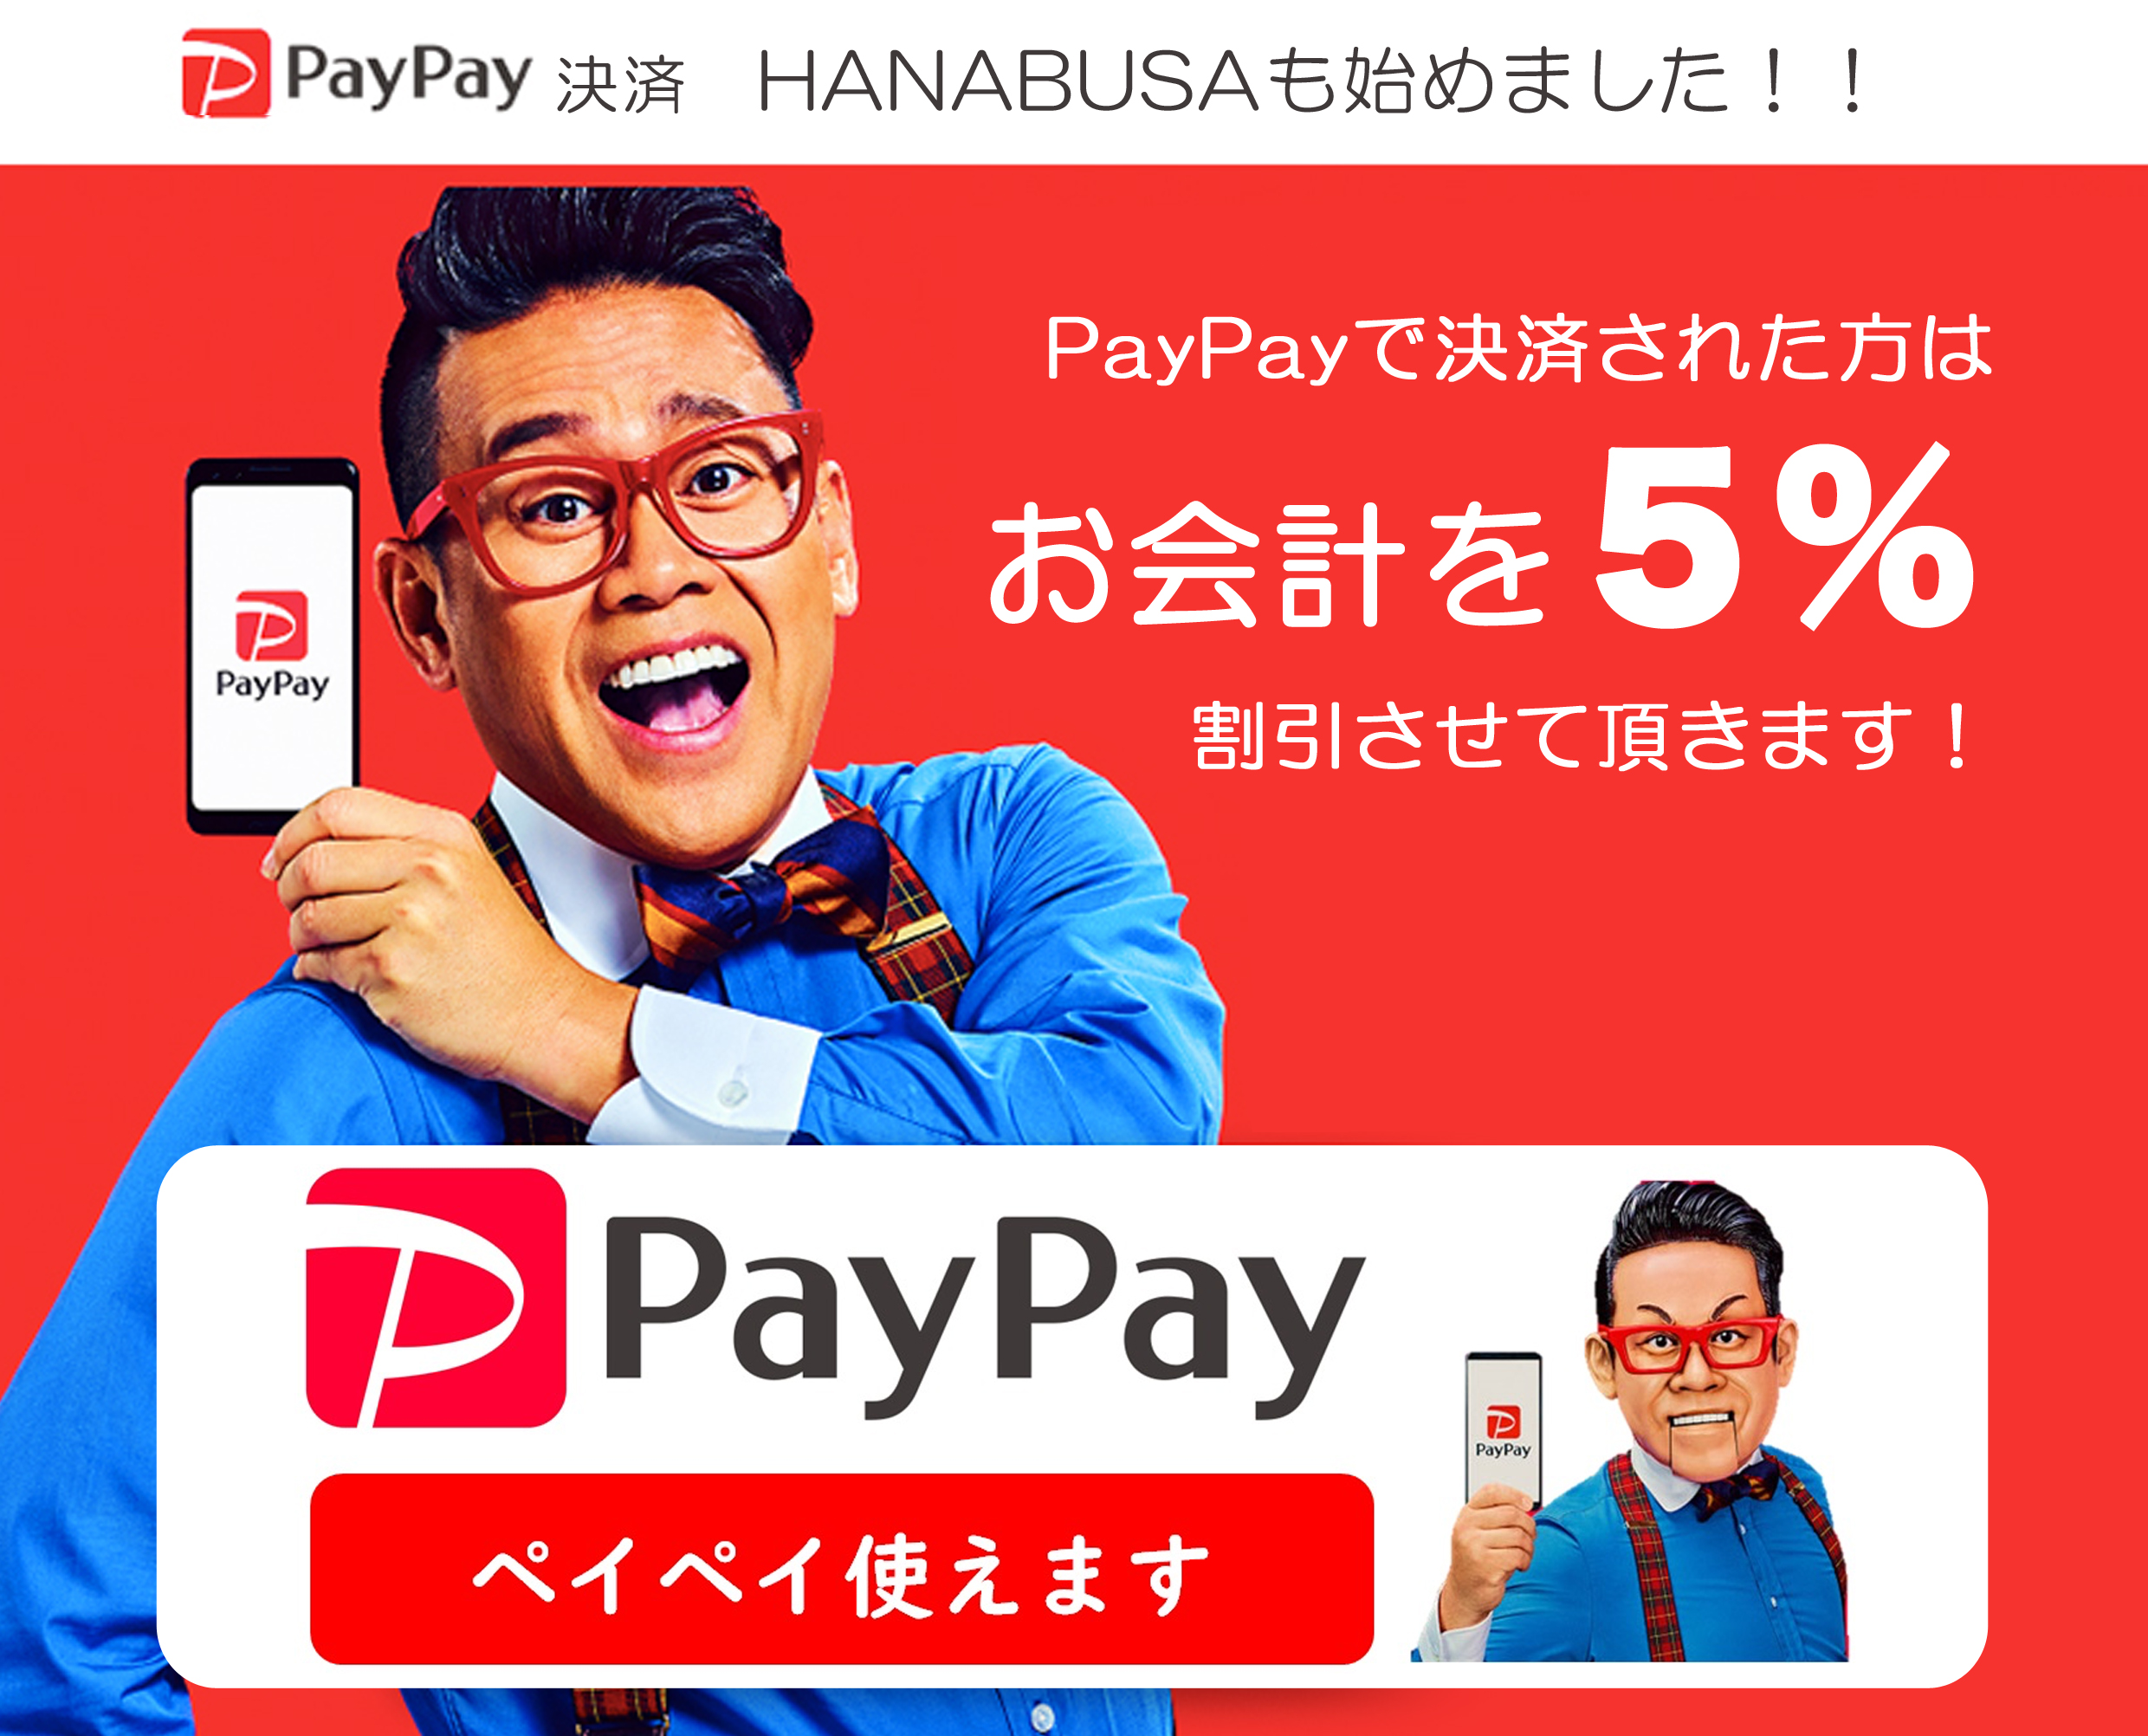 20196paypay